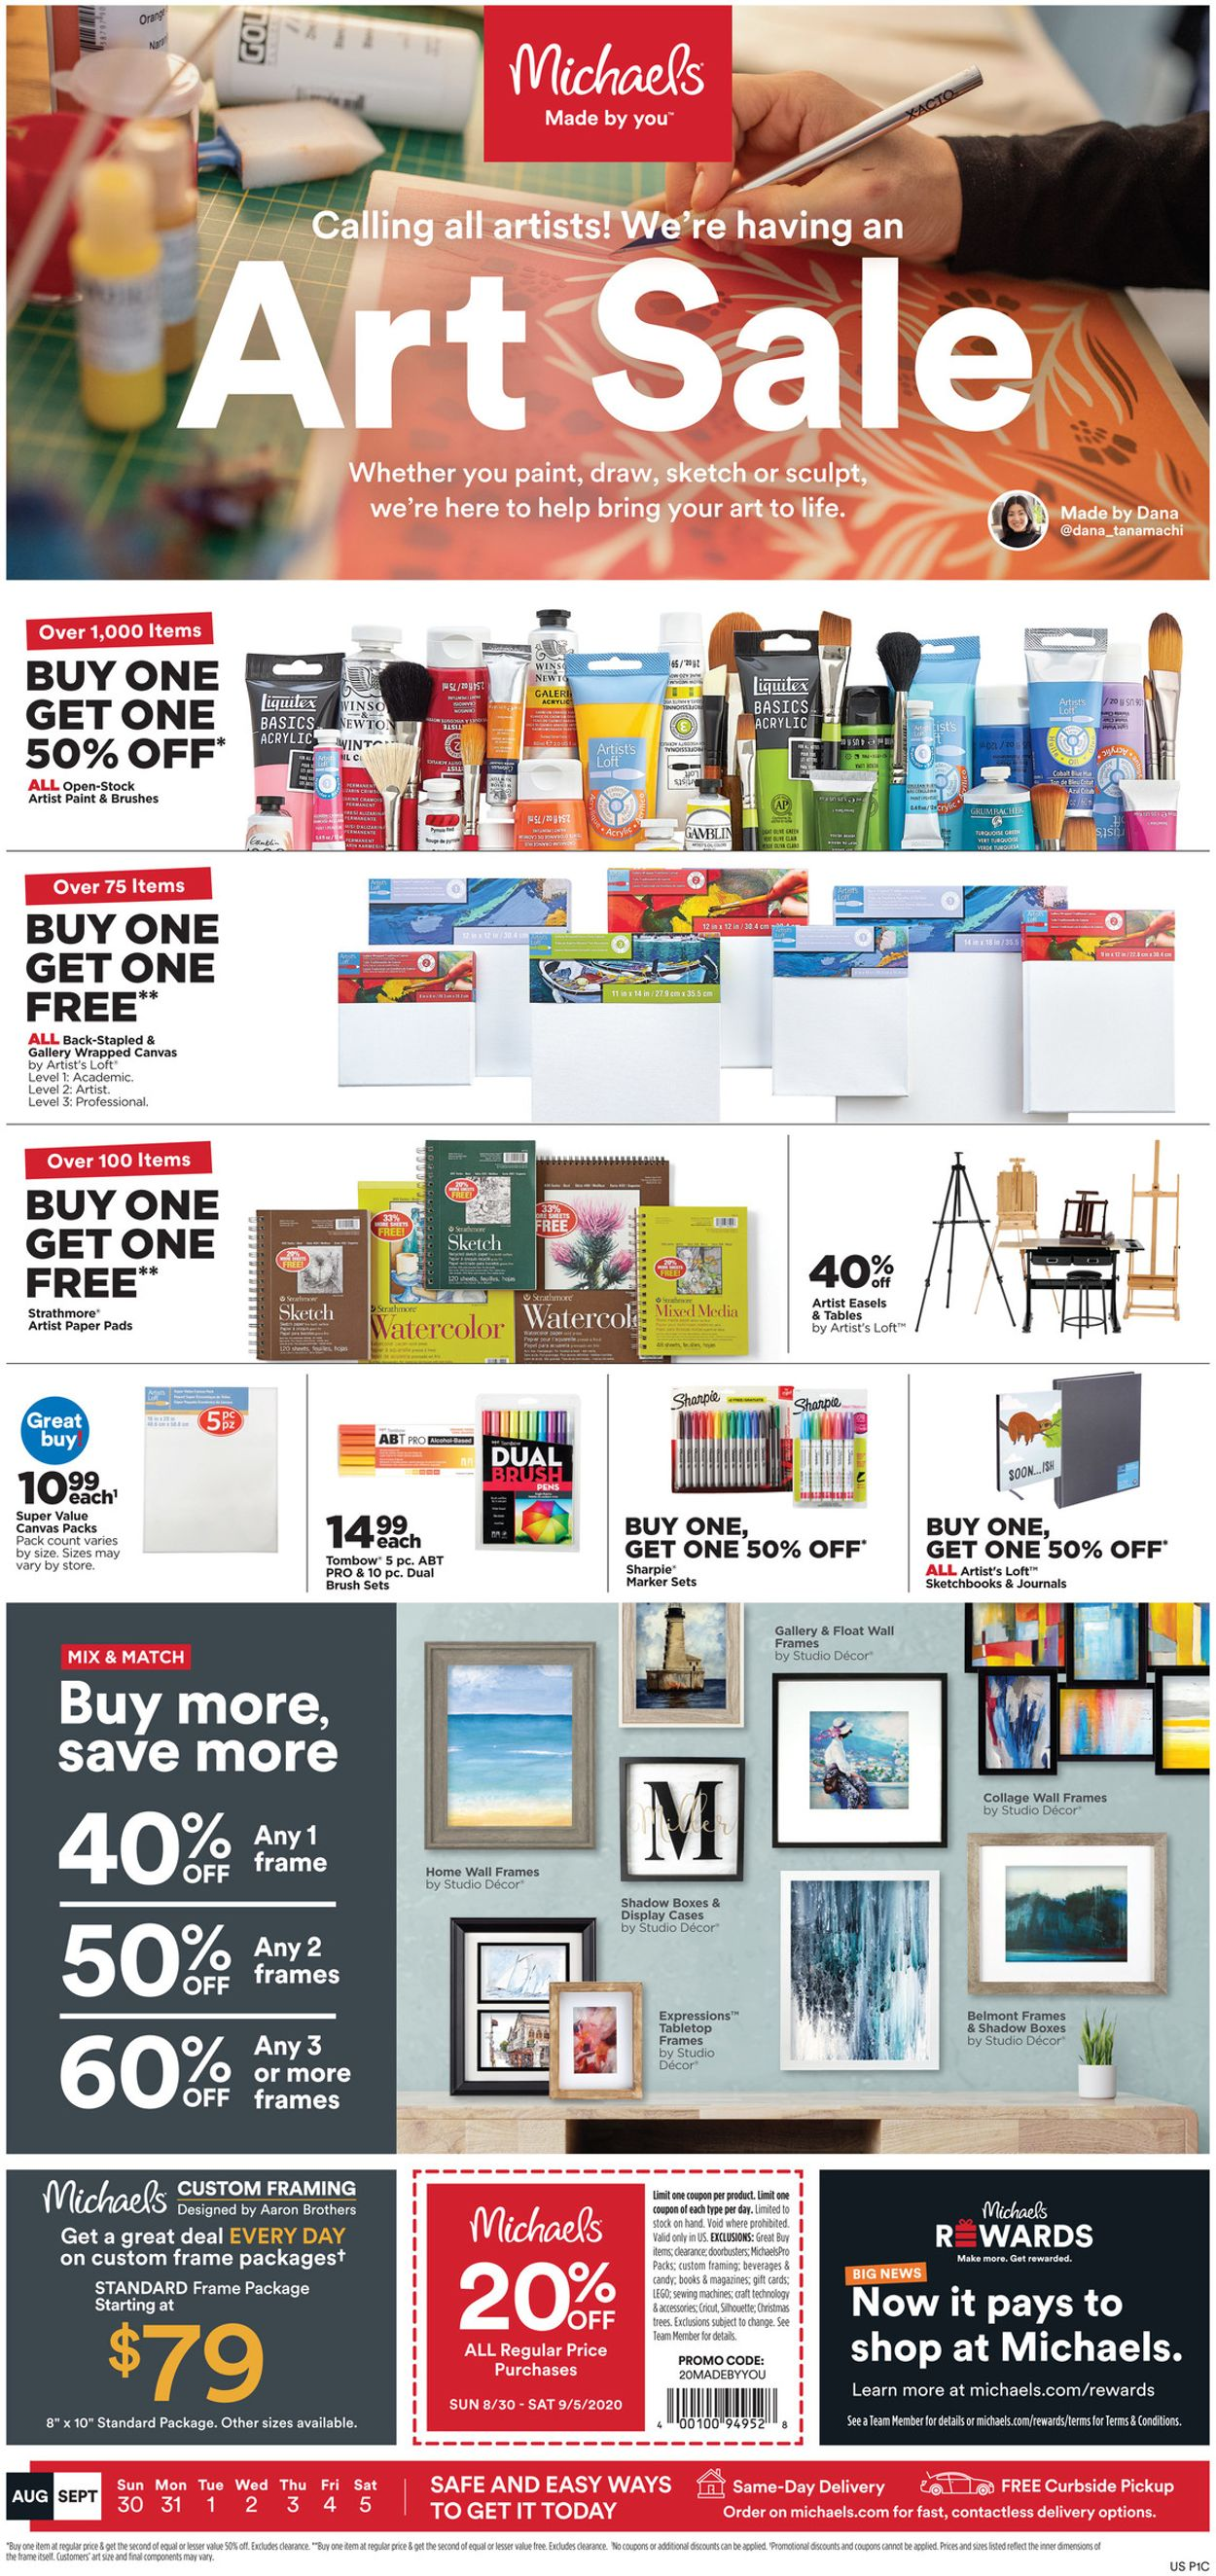 Michaels Weekly Ad Circular - valid 08/30-09/05/2020